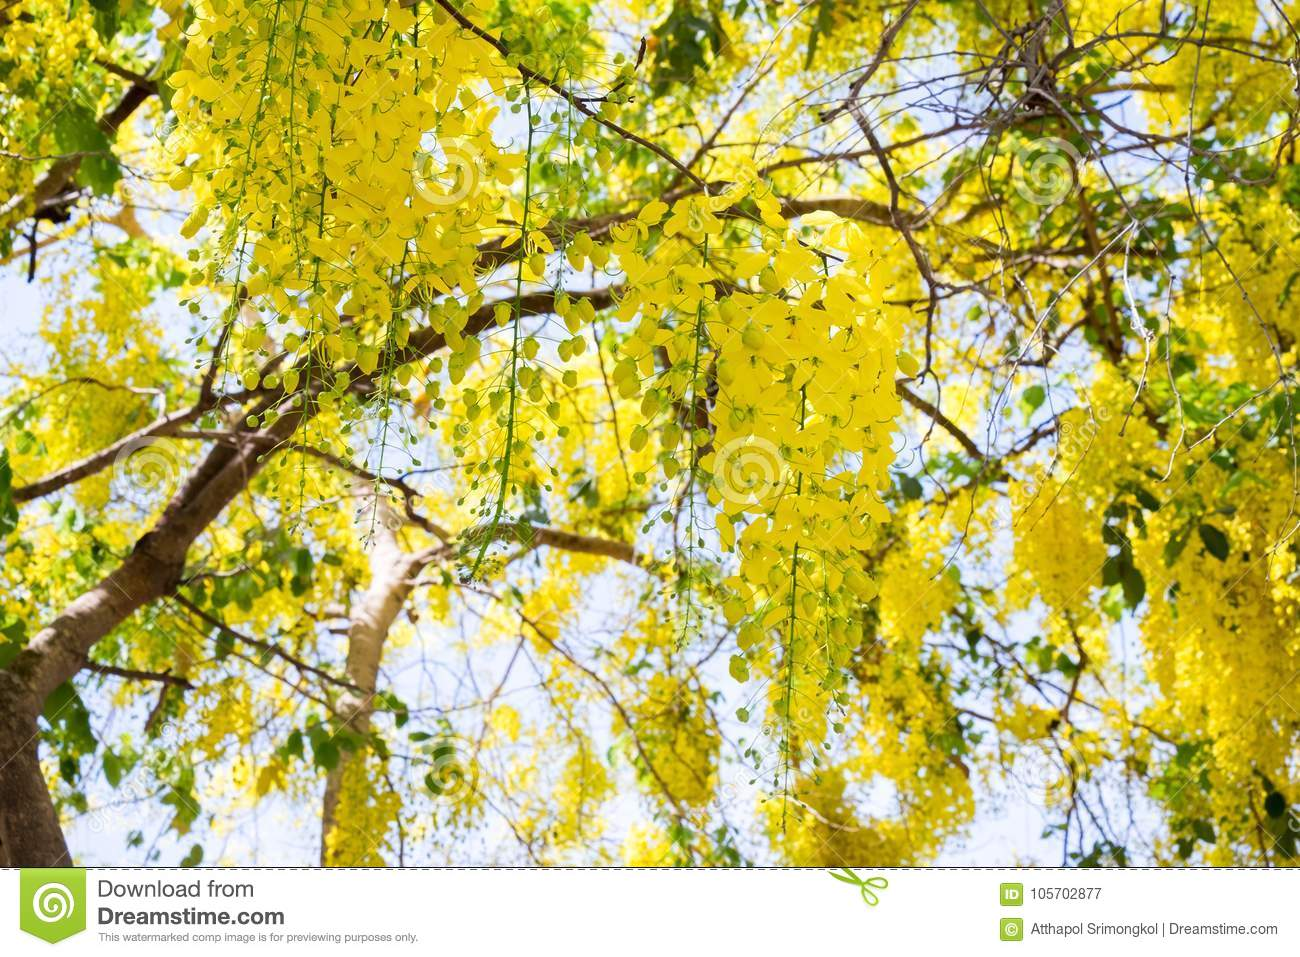 Golden Shower flowers are blooming in full of trees